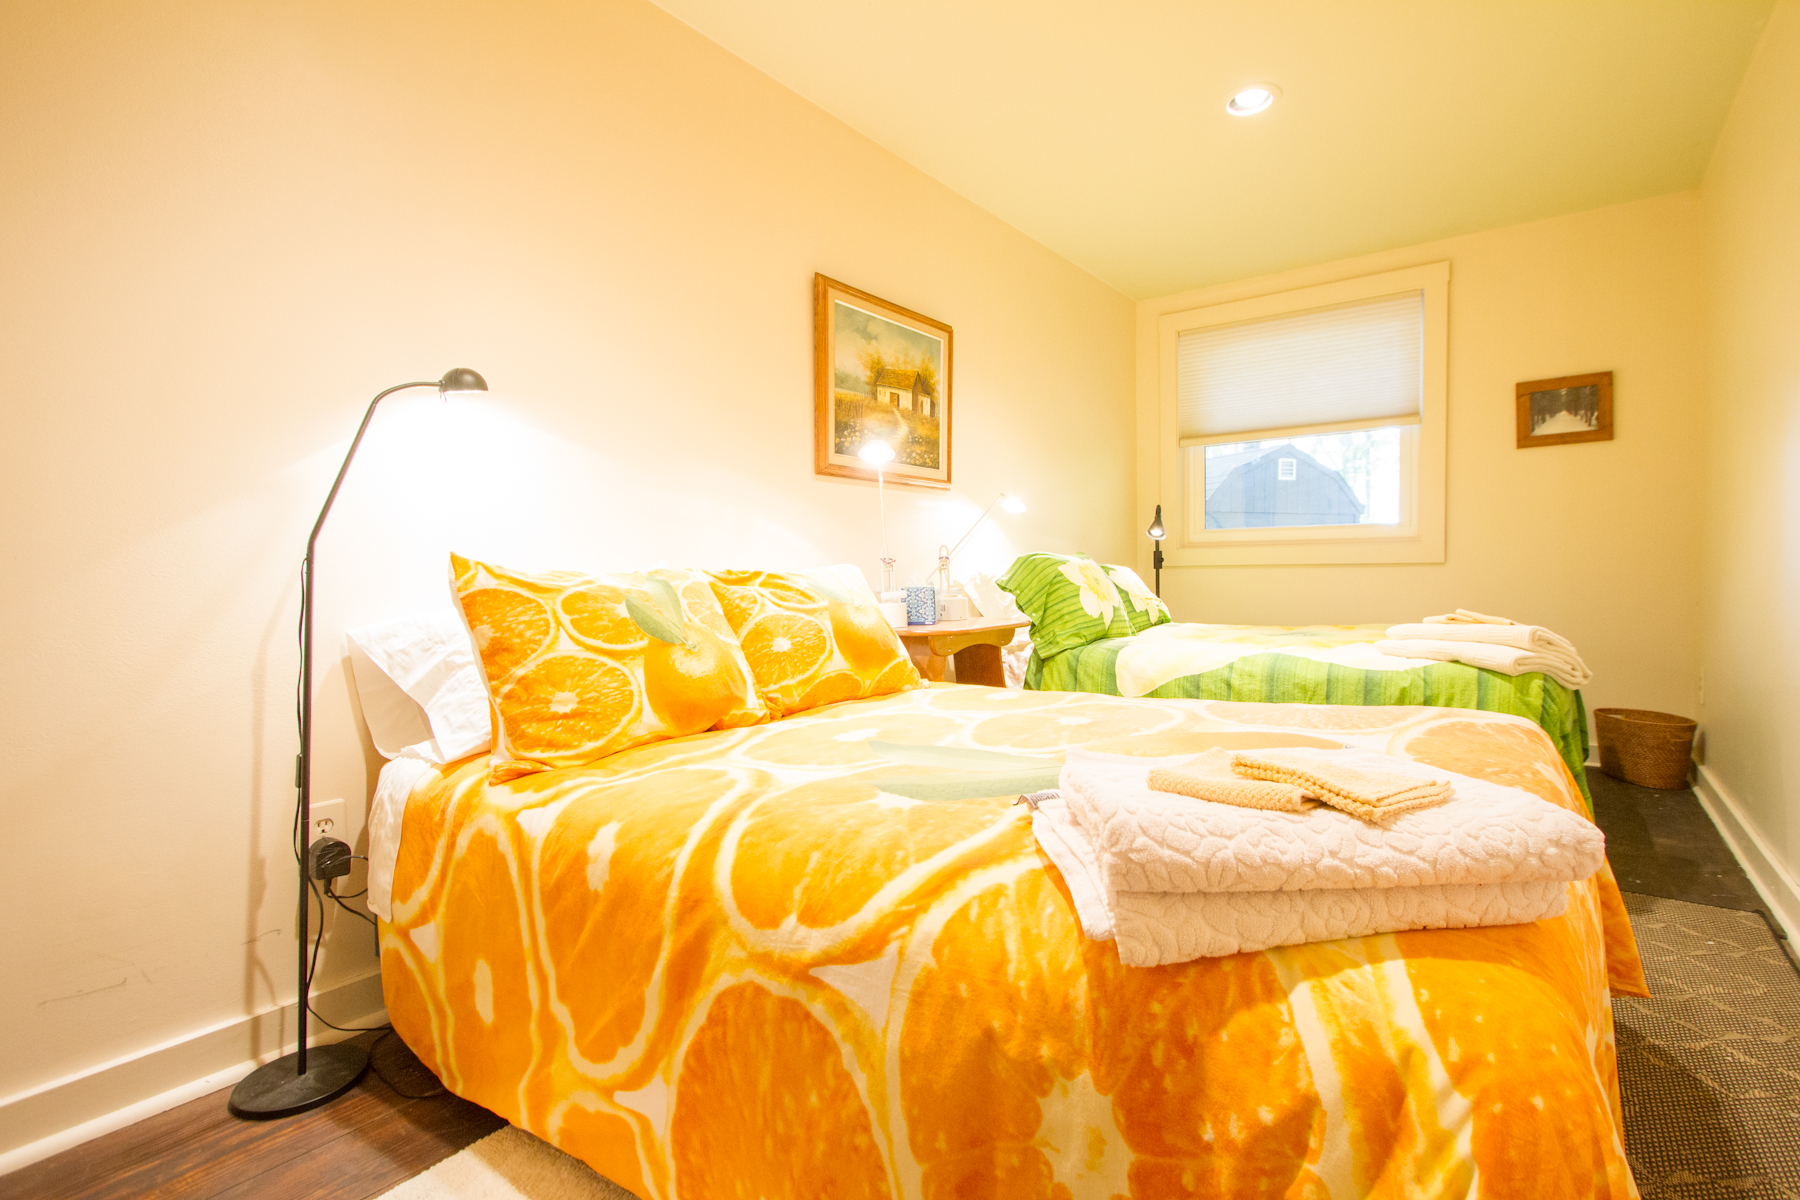 Warrior II Room (Book Private or Share)- 2 Full Beds